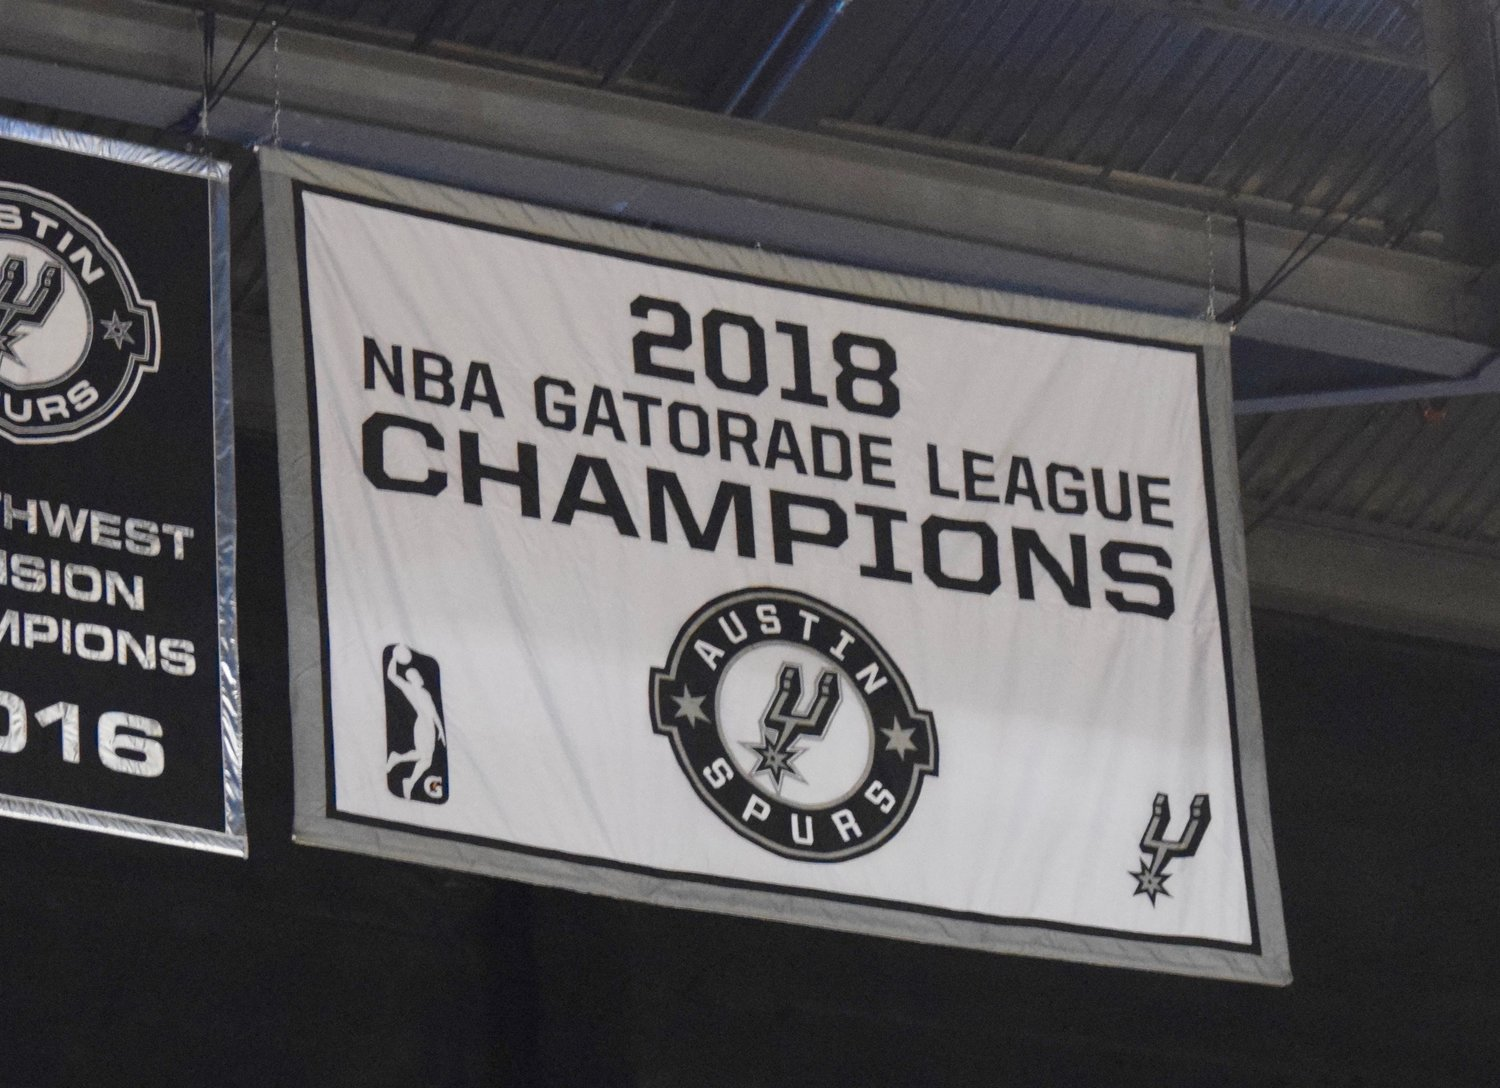 The Austin Spurs raised their second championship banner to the rafters of the HEB Center on Saturday night but lost to the Texas Legends 126-120.